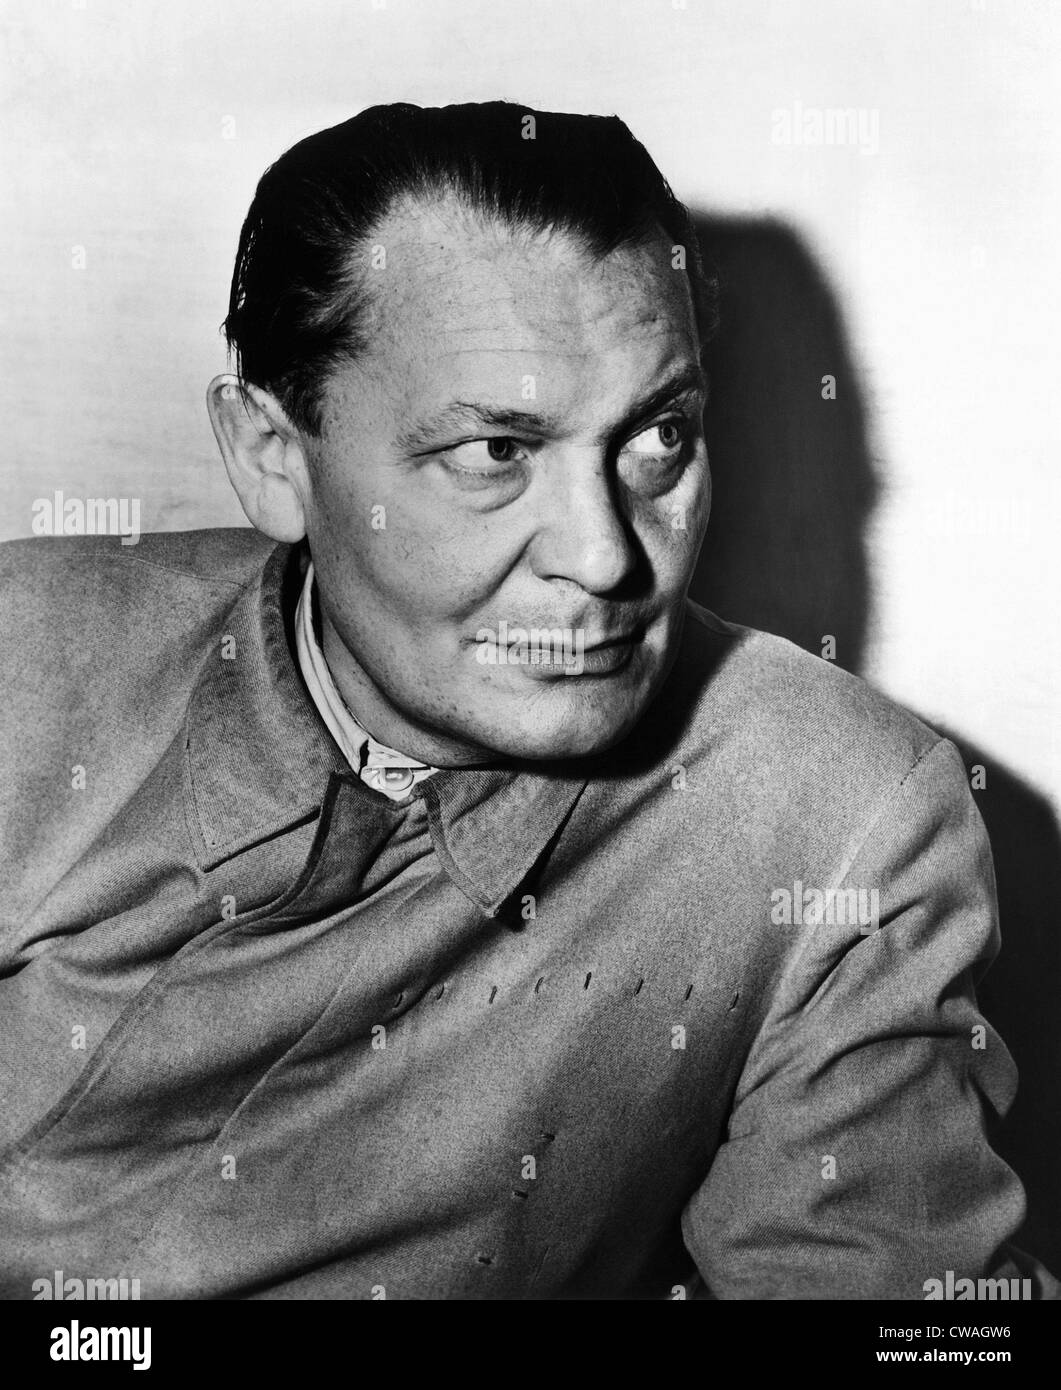 Nazi war criminal Hermann Goering, ca. early 1940s. Courtesy: CSU Archives / Everett Collection - Stock Image